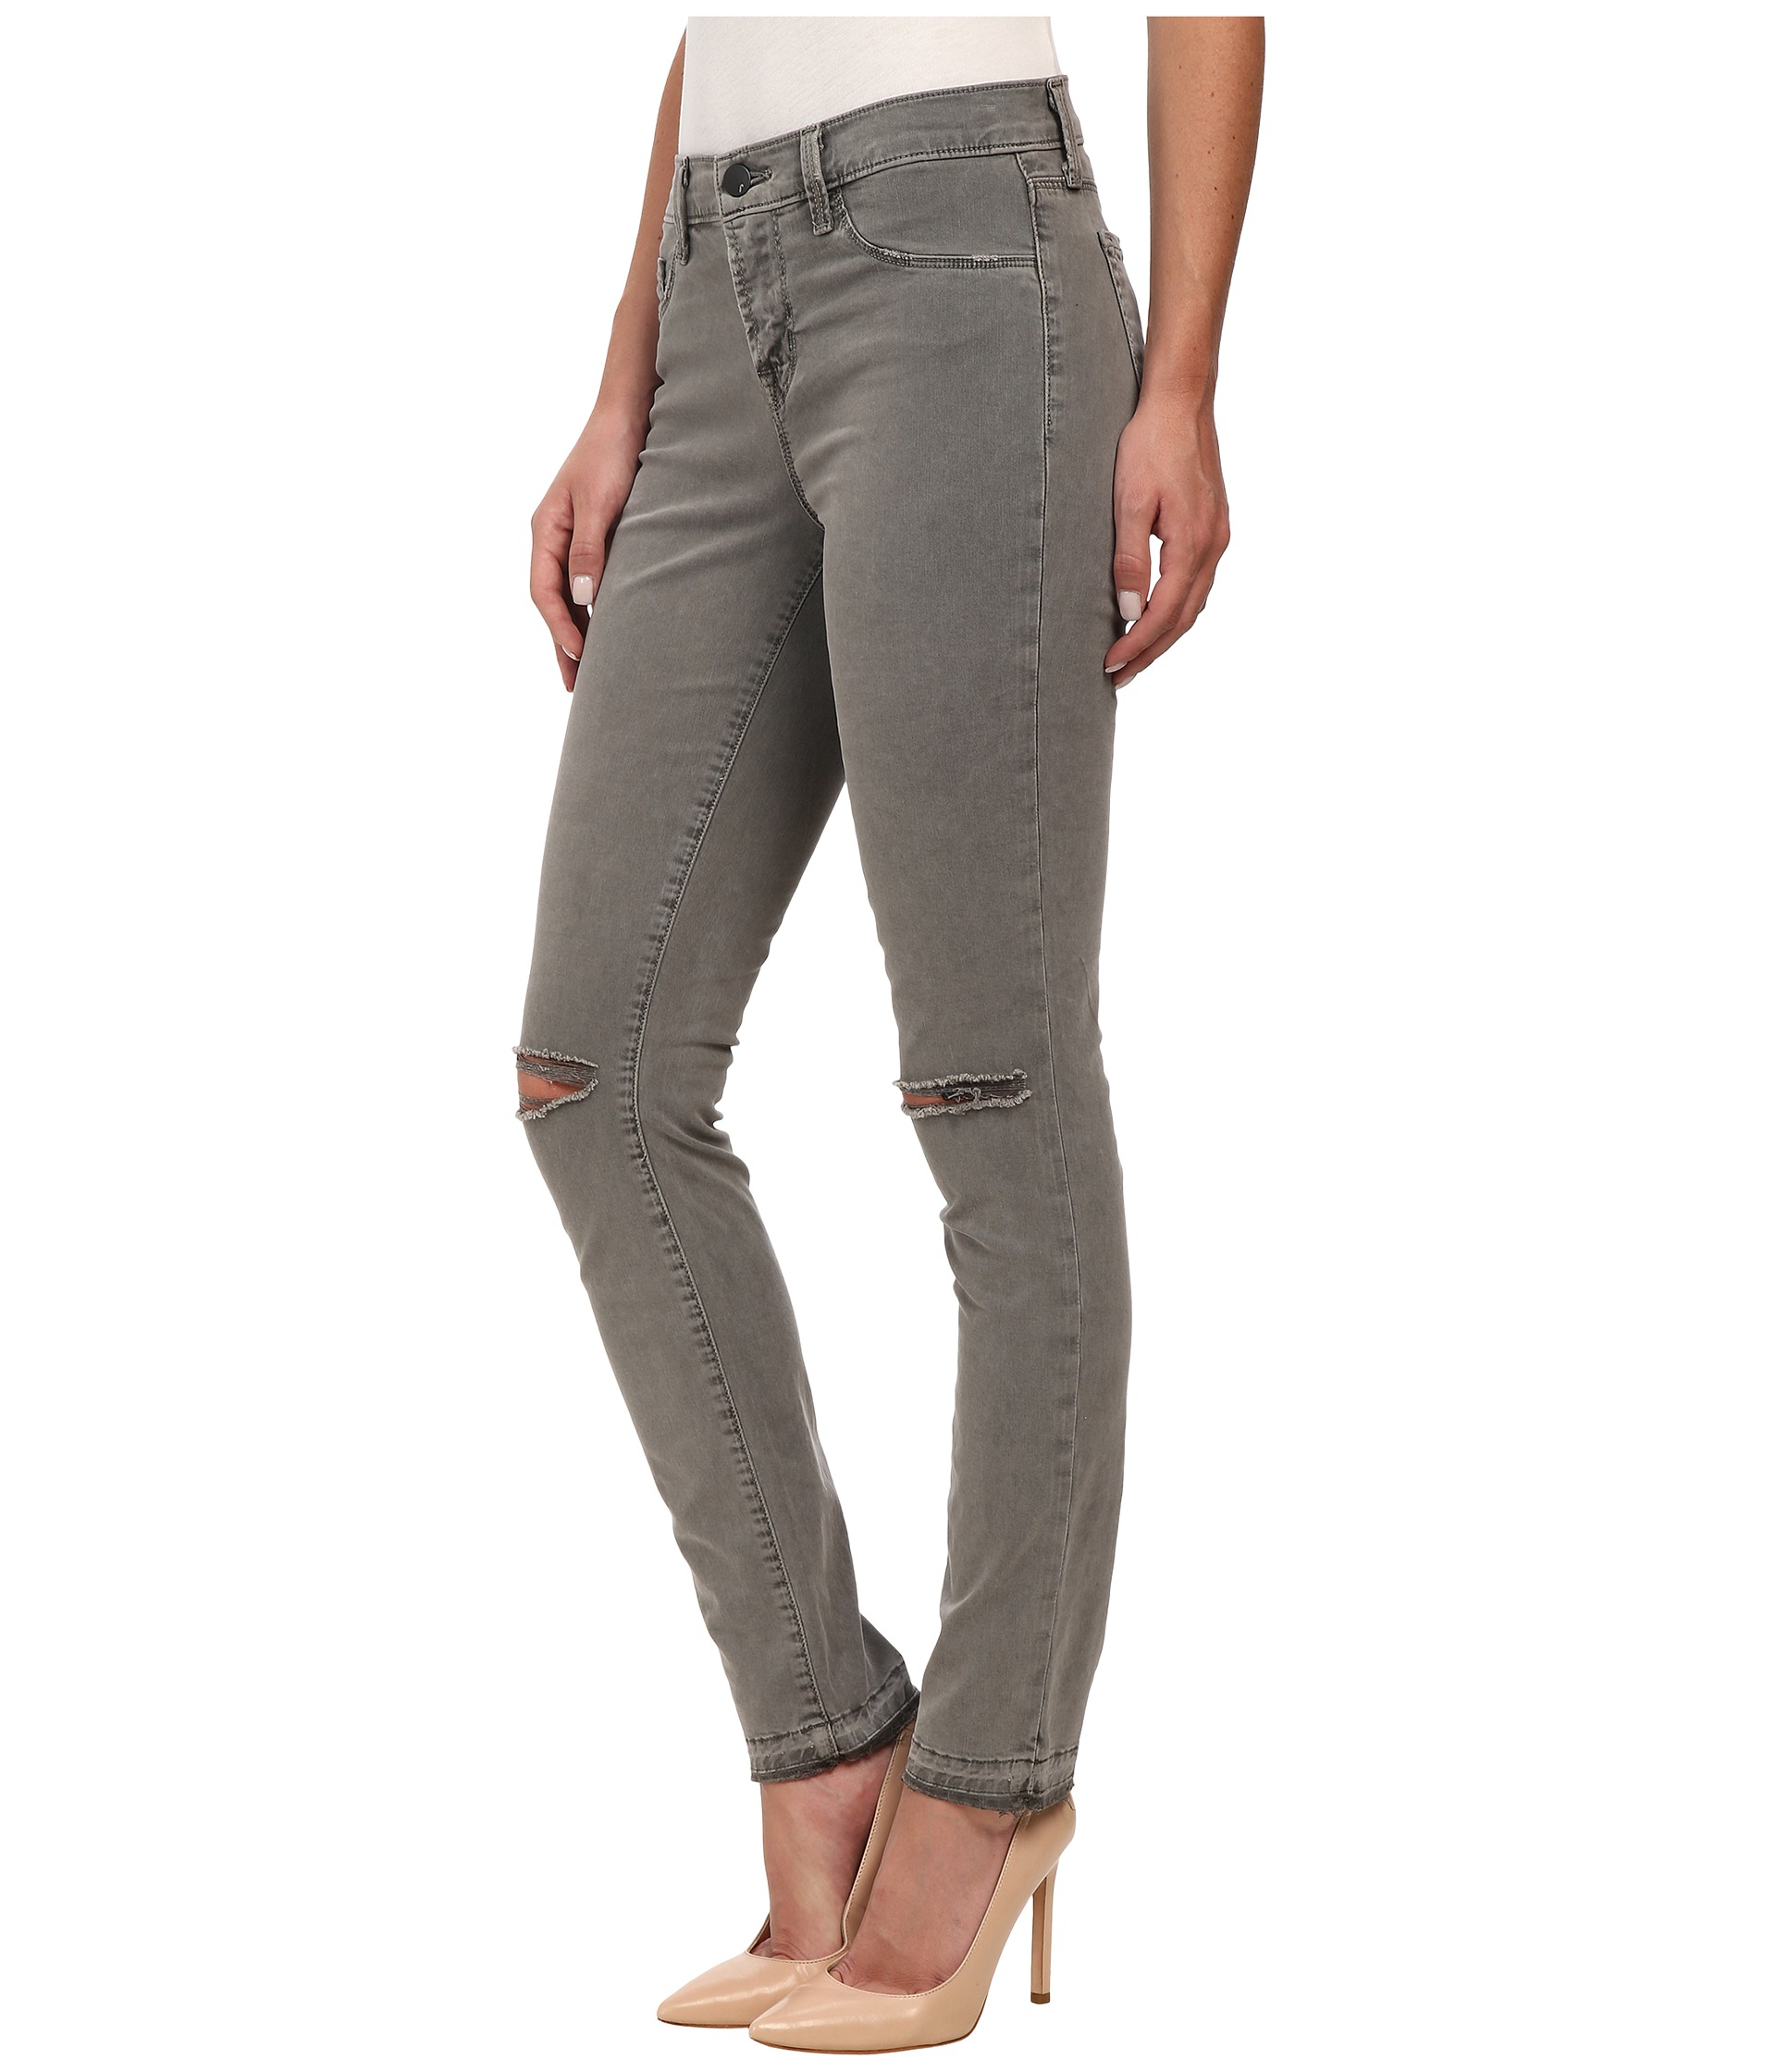 Silver Brand Maternity Jeans - Jeans Am